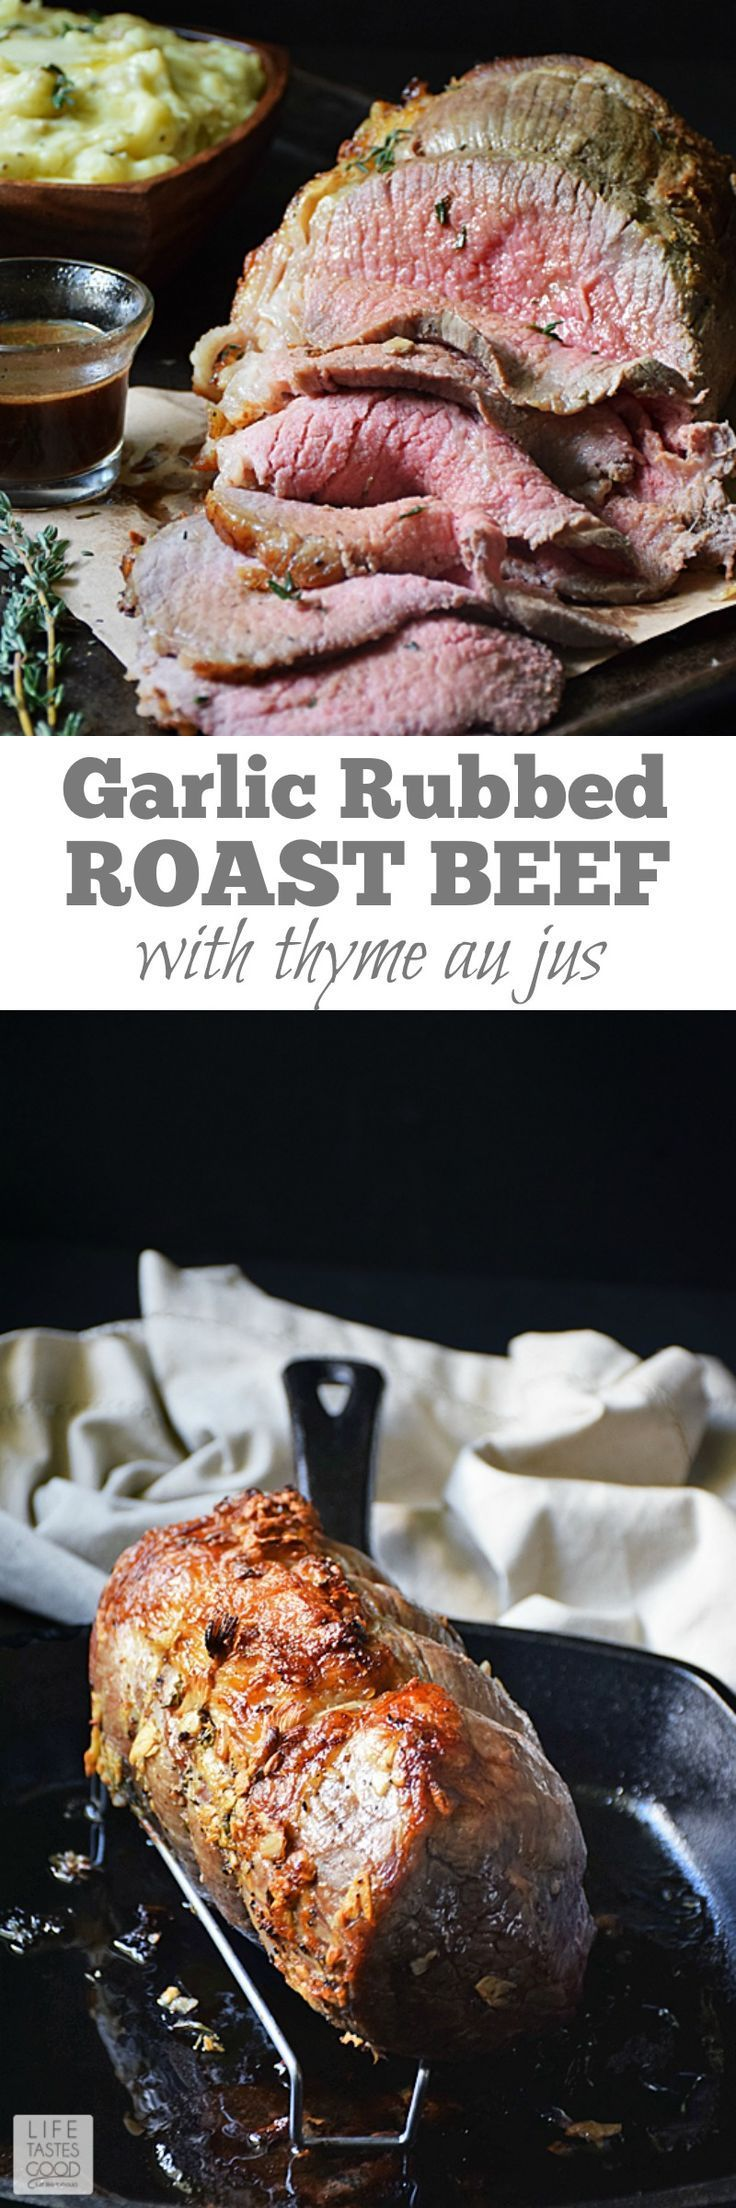 Gather the family around to enjoy this beautiful Garlic Roast Beef | With a crisp garlicky crust on the outside and juicy inside, this elegant meal is special enough for holidays!